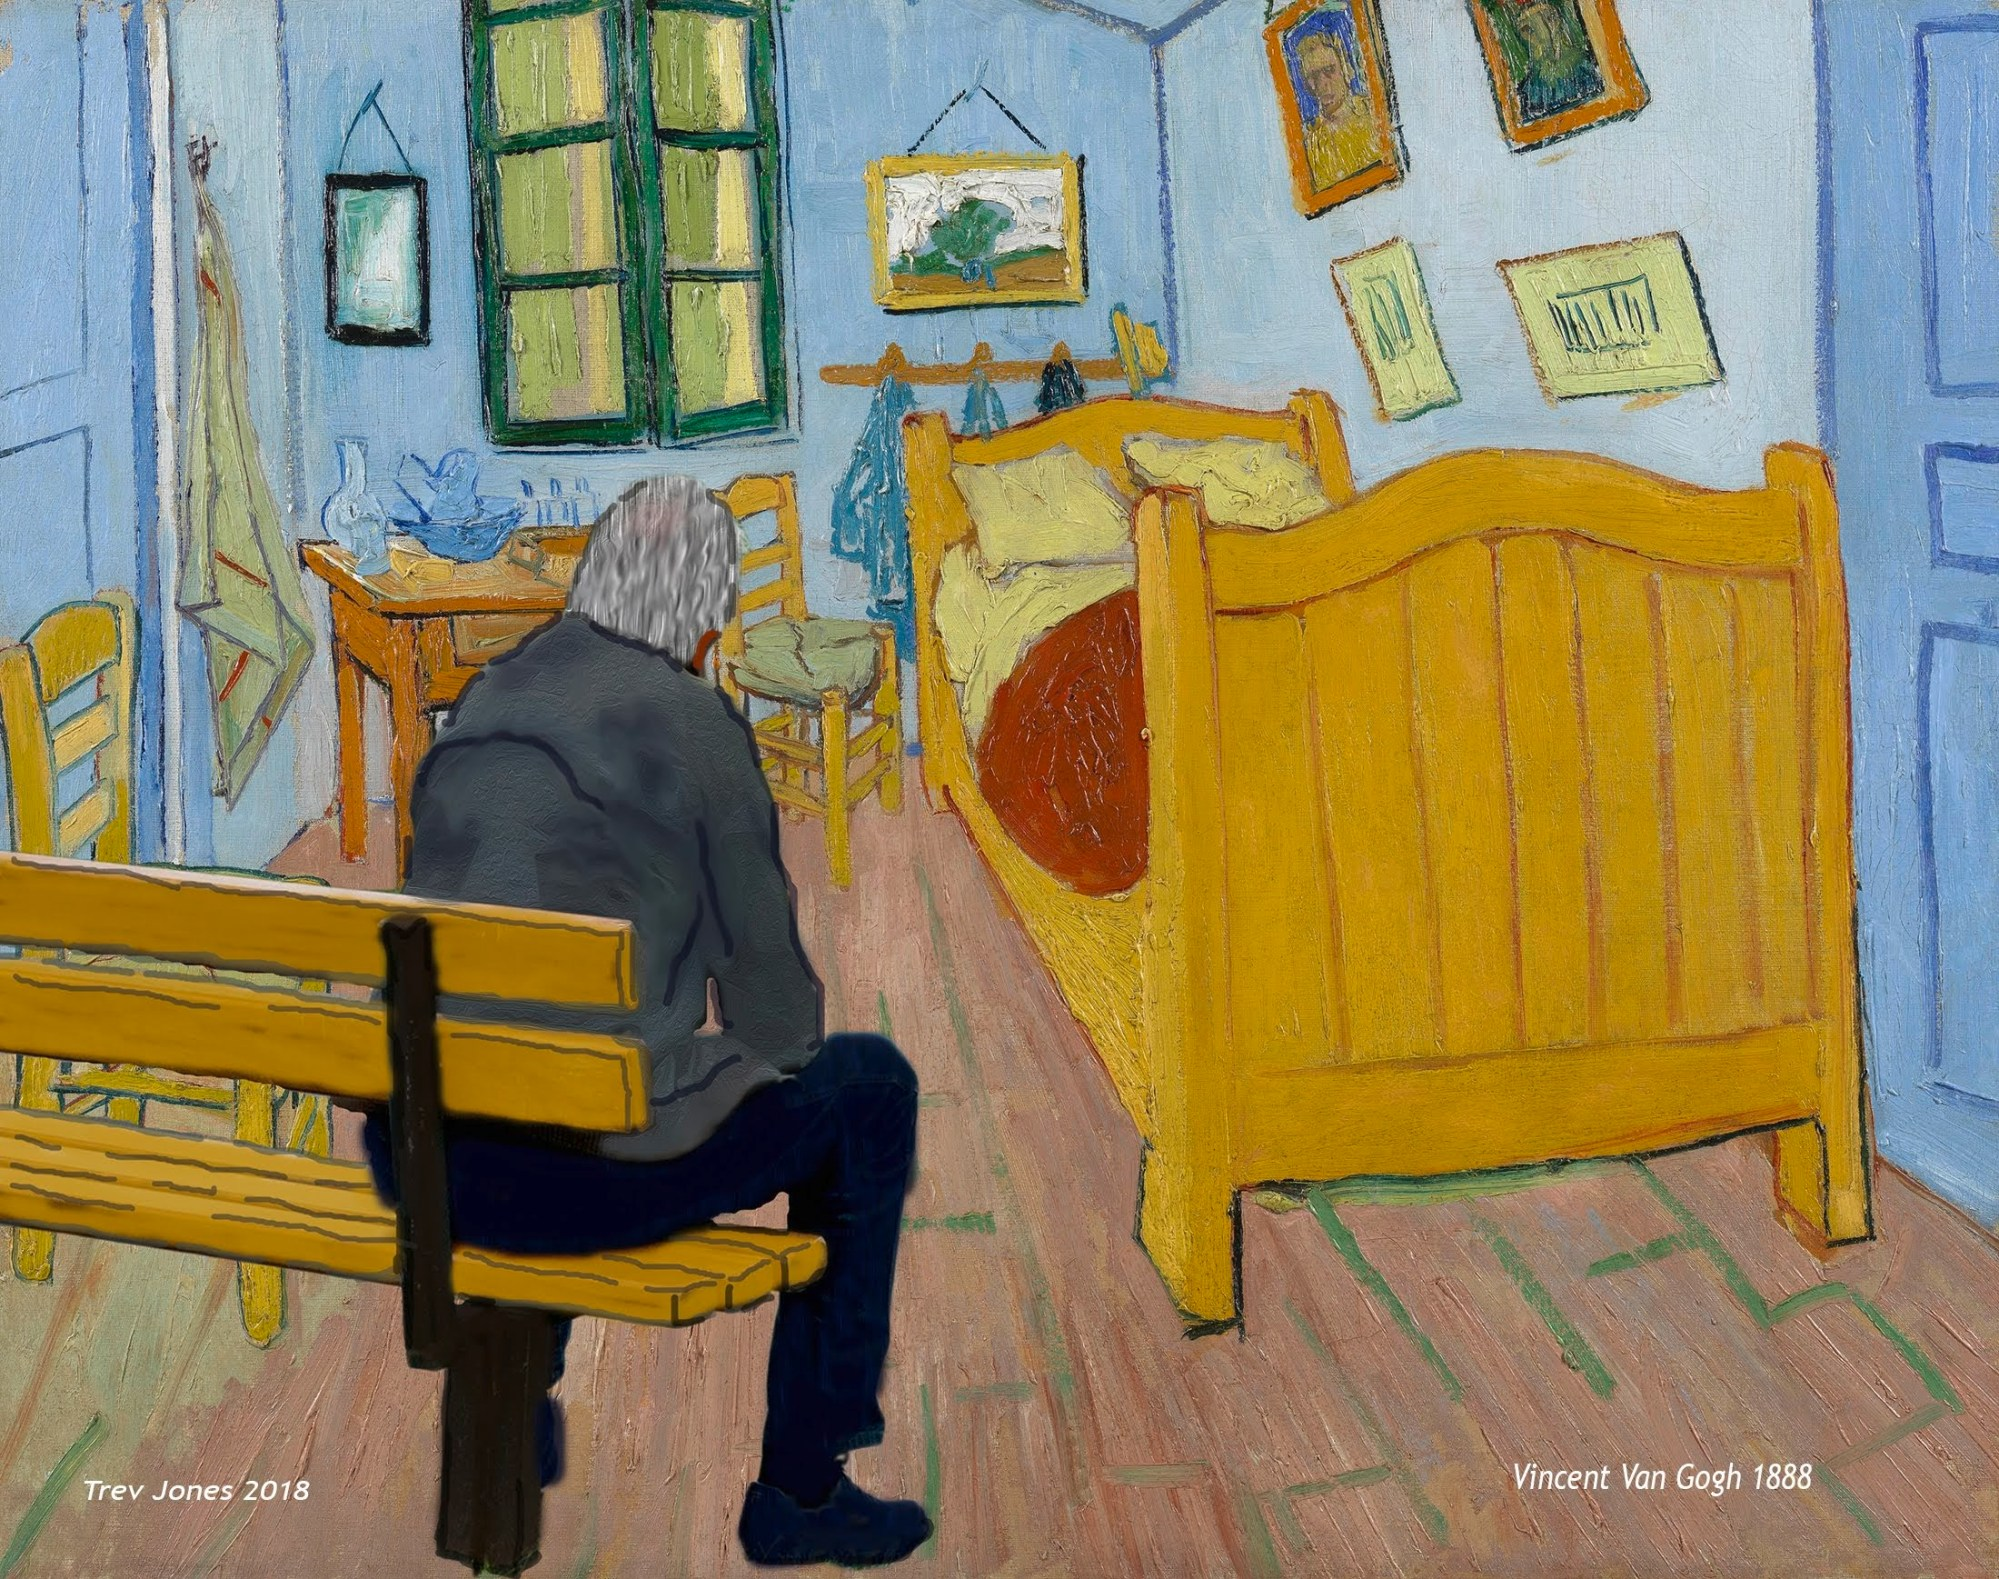 In Van Gogh's Bedroom